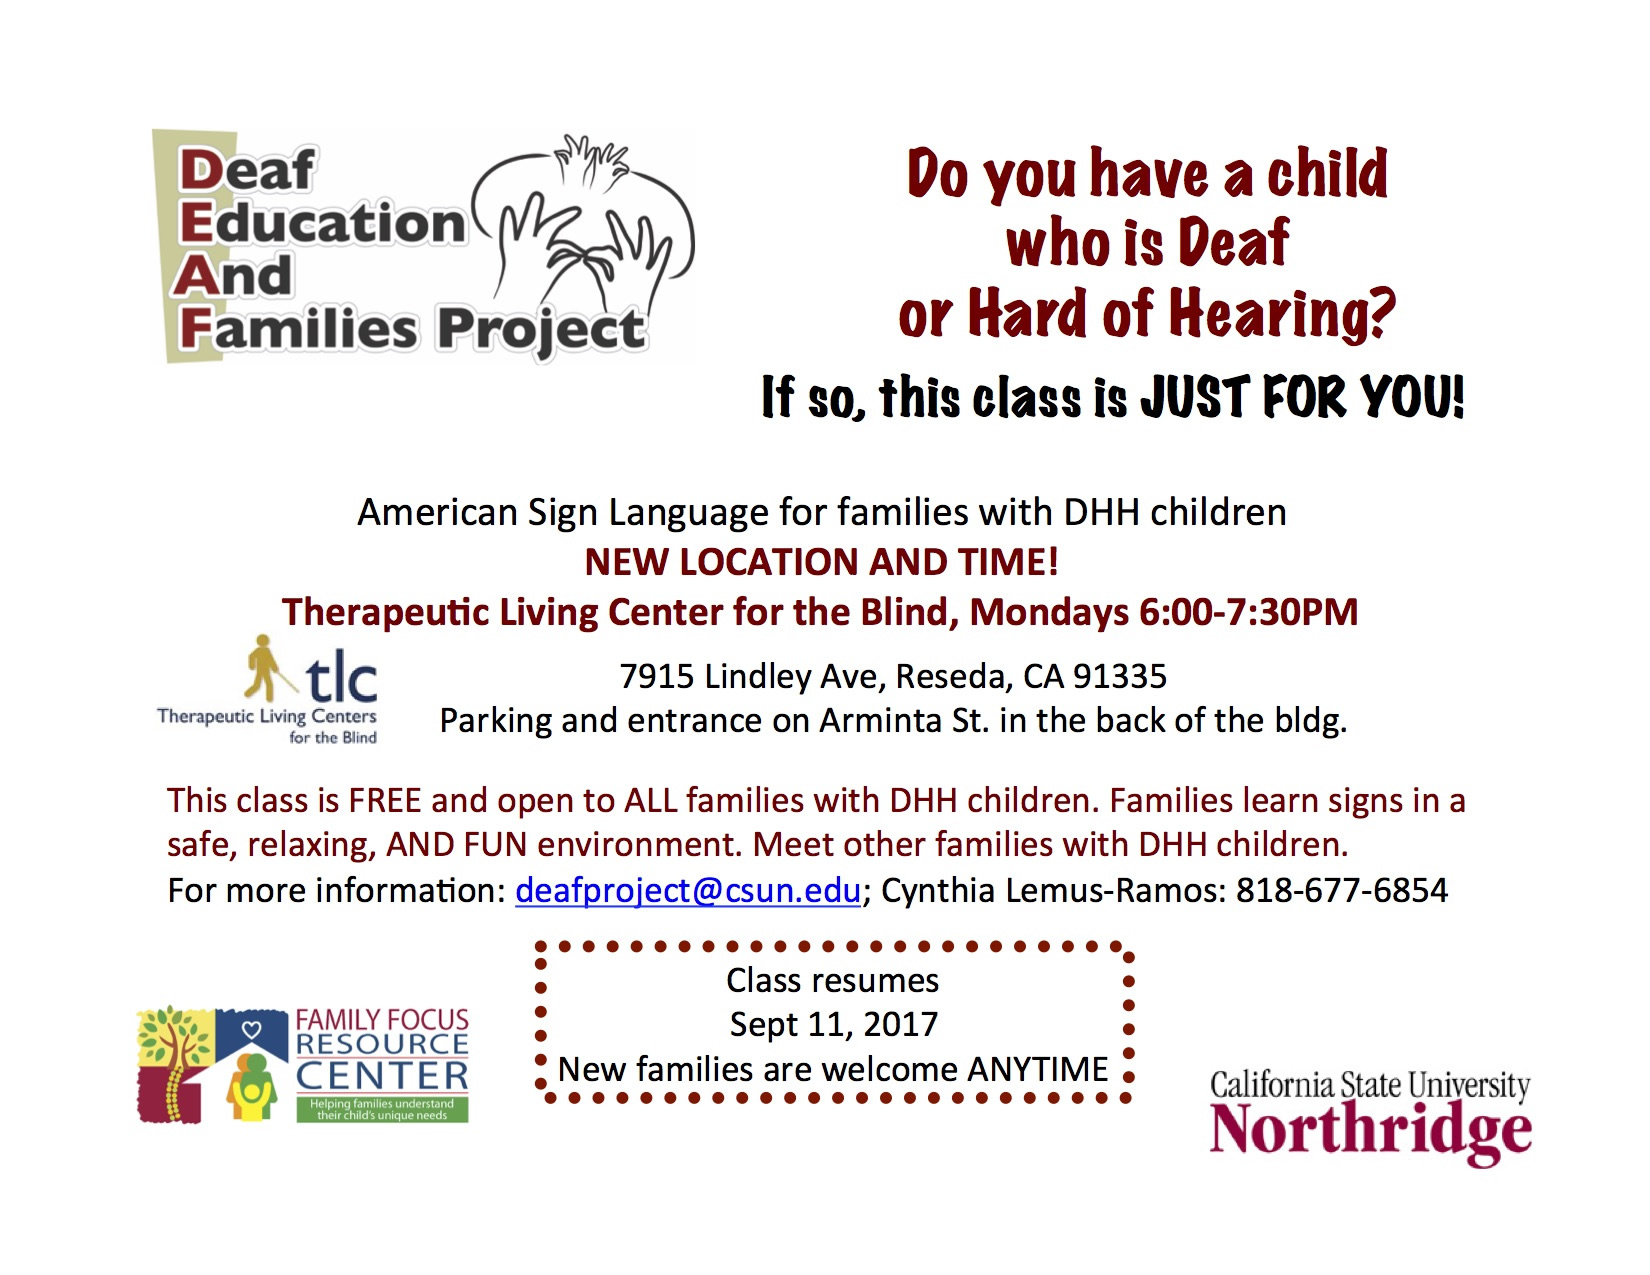 Deaf Education and Families Project